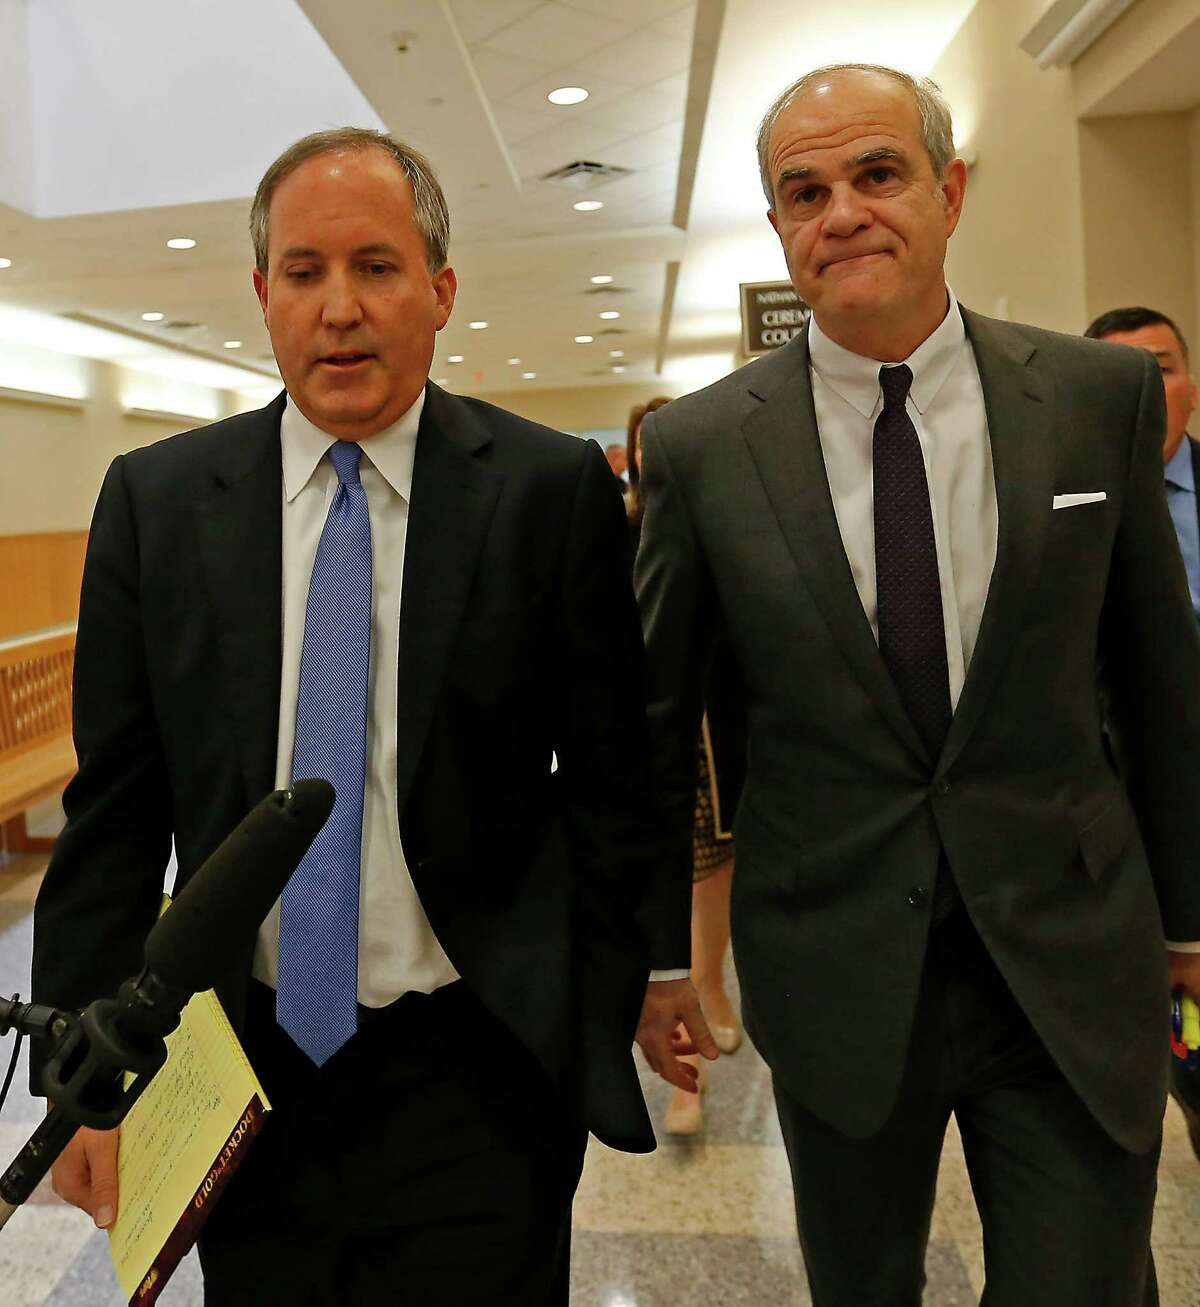 Texas Attorney General Ken Paxton, left, and his attorney Philip Hilder leave a courtroom after his pre-trial motion hearing at the Collin County courthouse. Paxton will not be able to use out-of-state contributions to pay his legal fees.